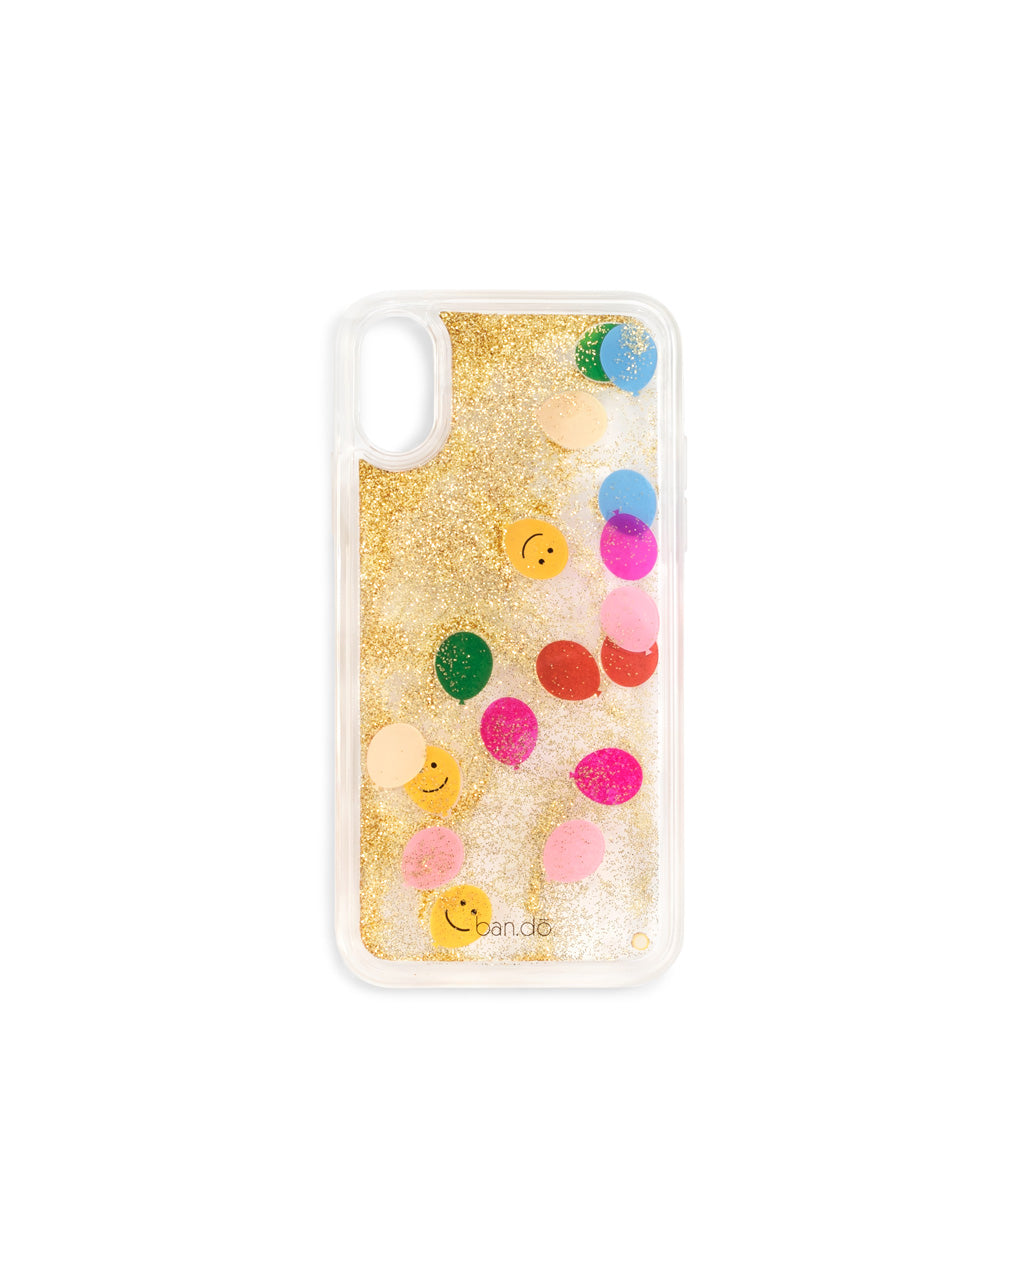 Back shot of a hard clear plastic iphone case filled with gold glitter and floating balloon icons.